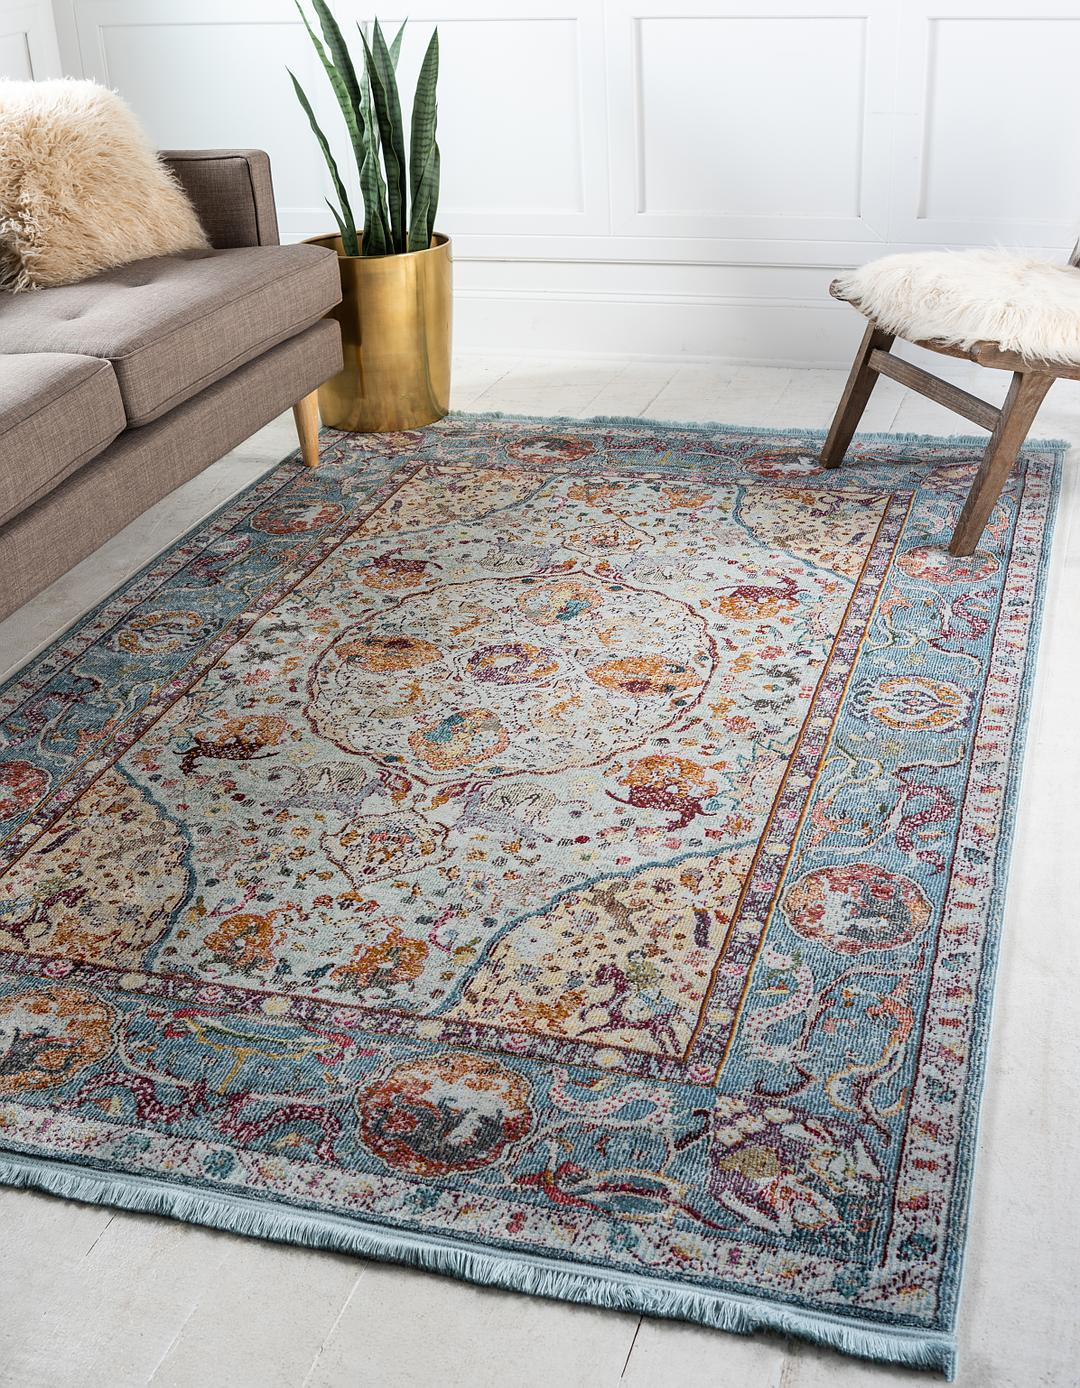 enjoyable area download designs picture sumptuous fresh lovely ideas of rug design x